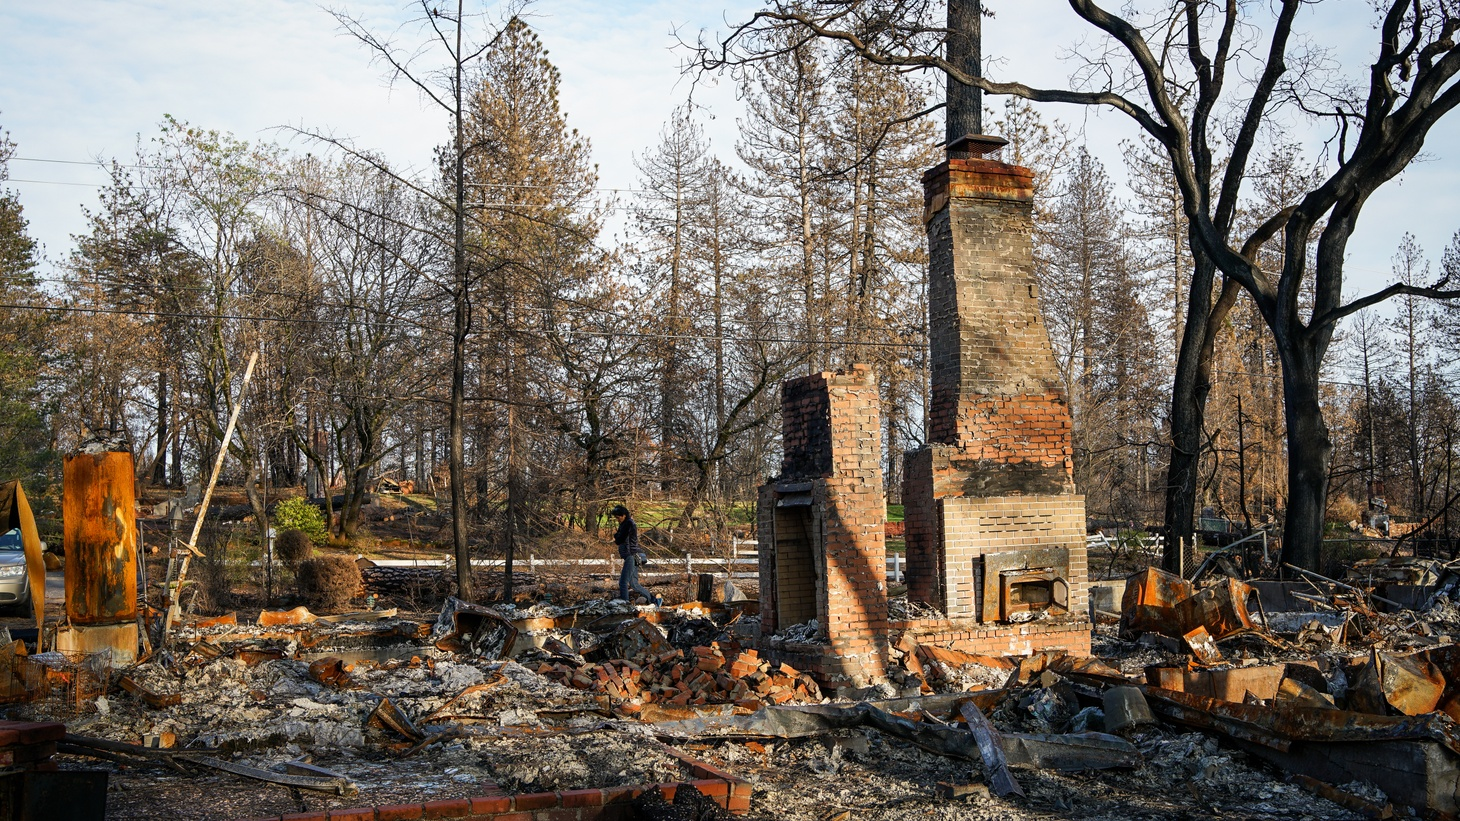 Remnants of a burned home in Paradise, California after the Camp Fire that occurred in November 2018. Photo taken March 1, 2019.